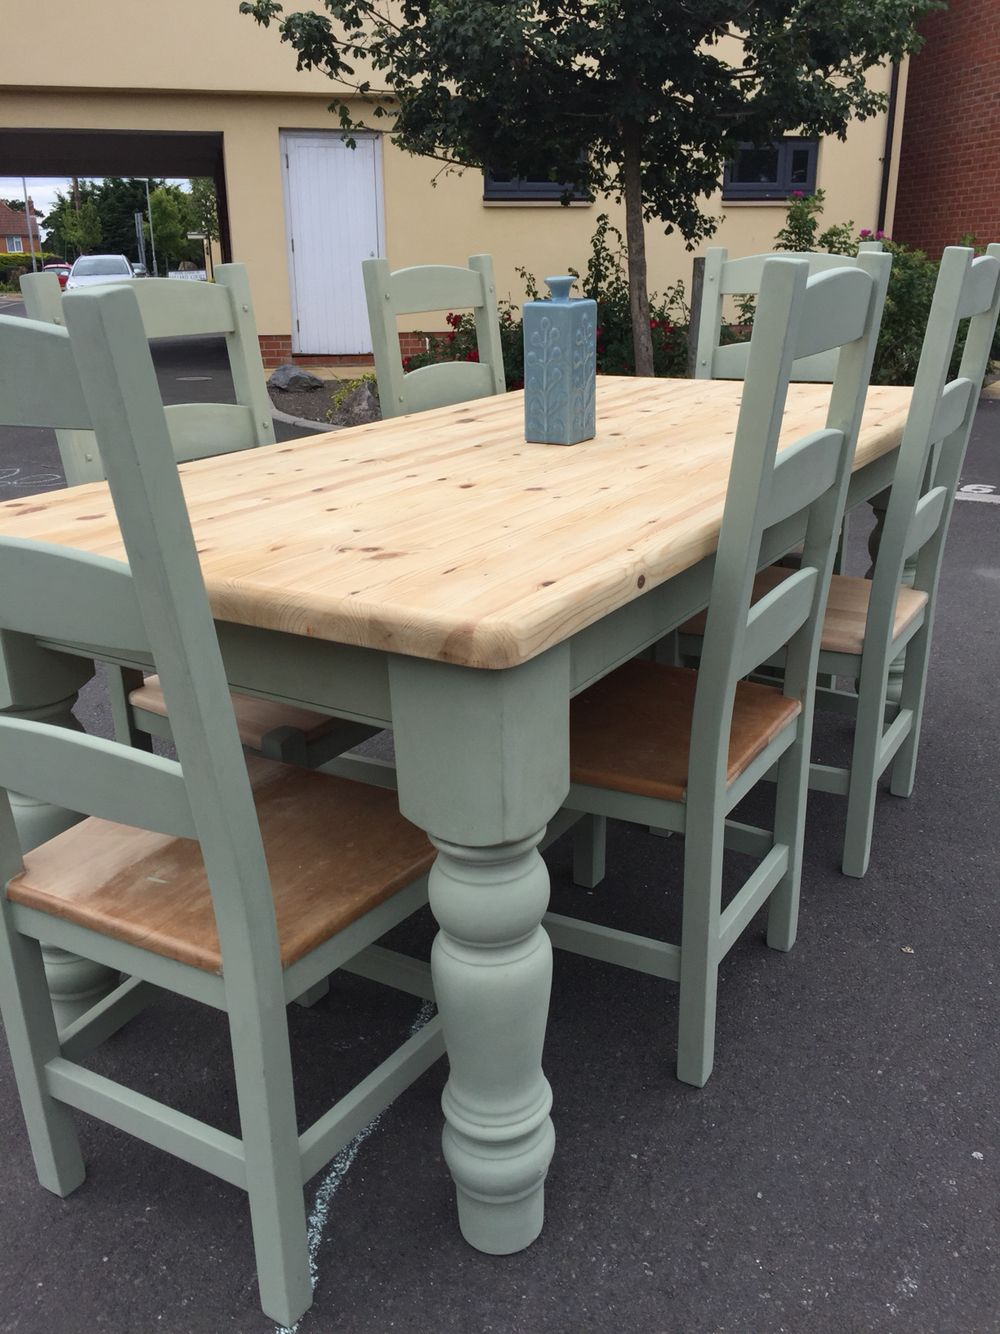 6ft farmhouse table and 6 chairs in sage green! | Painted ...